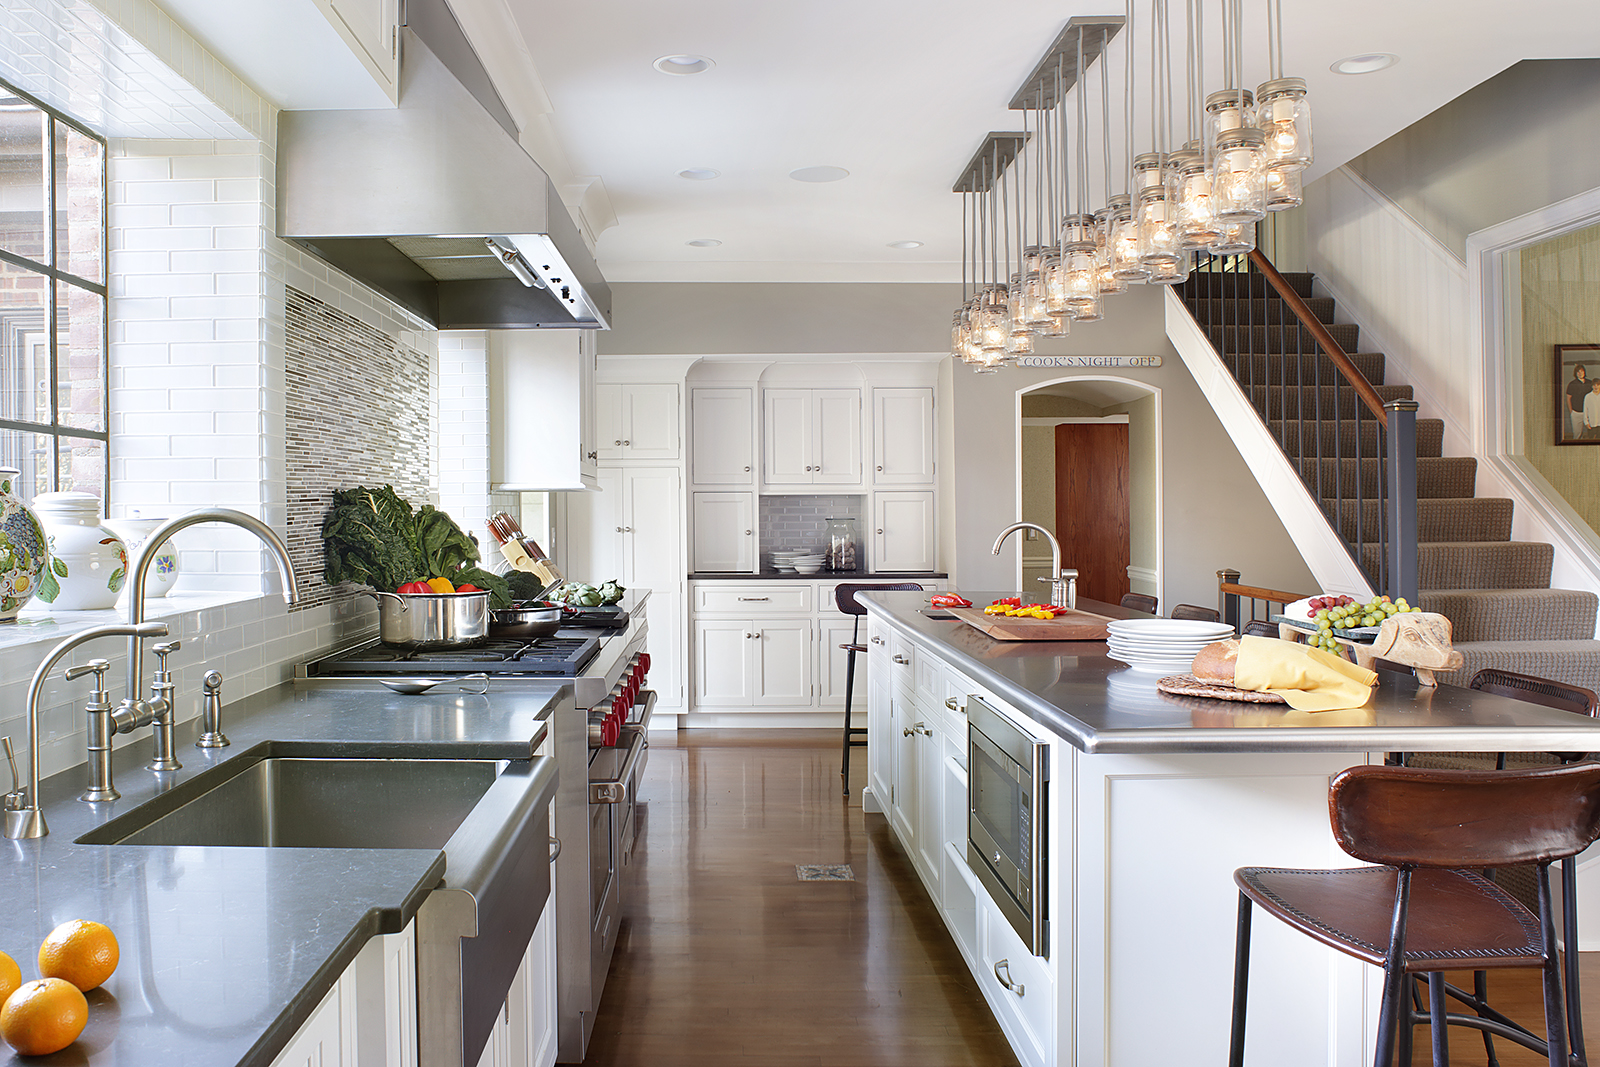 What Are The Important Considerations For Renovating A Kitchen?